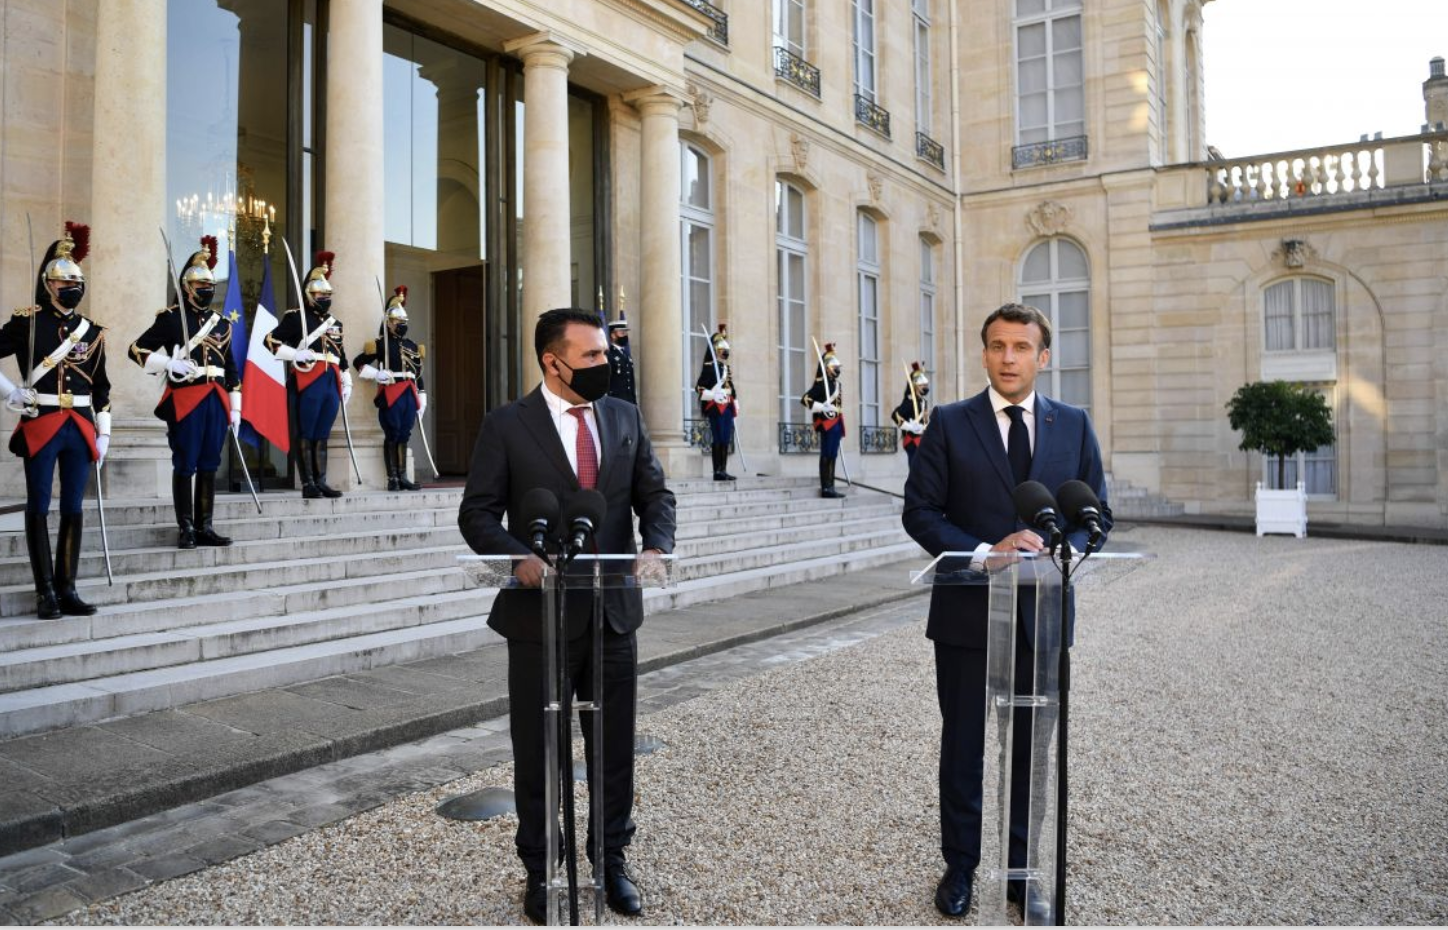 France supports the accession process of North Macedonia, Macron told Zaev